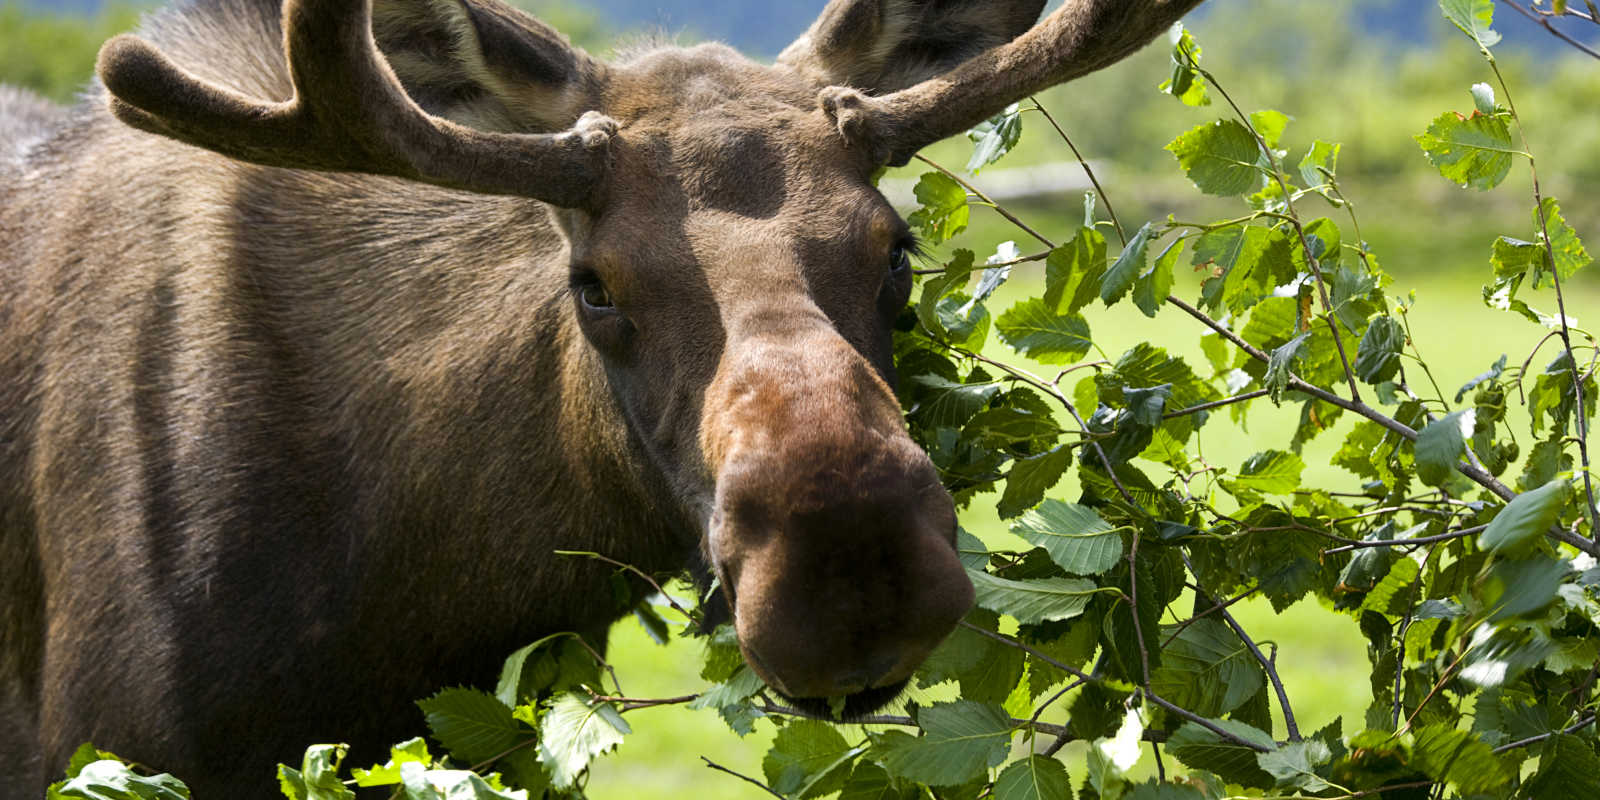 Wildlife sighting of a Moose near Anchorage